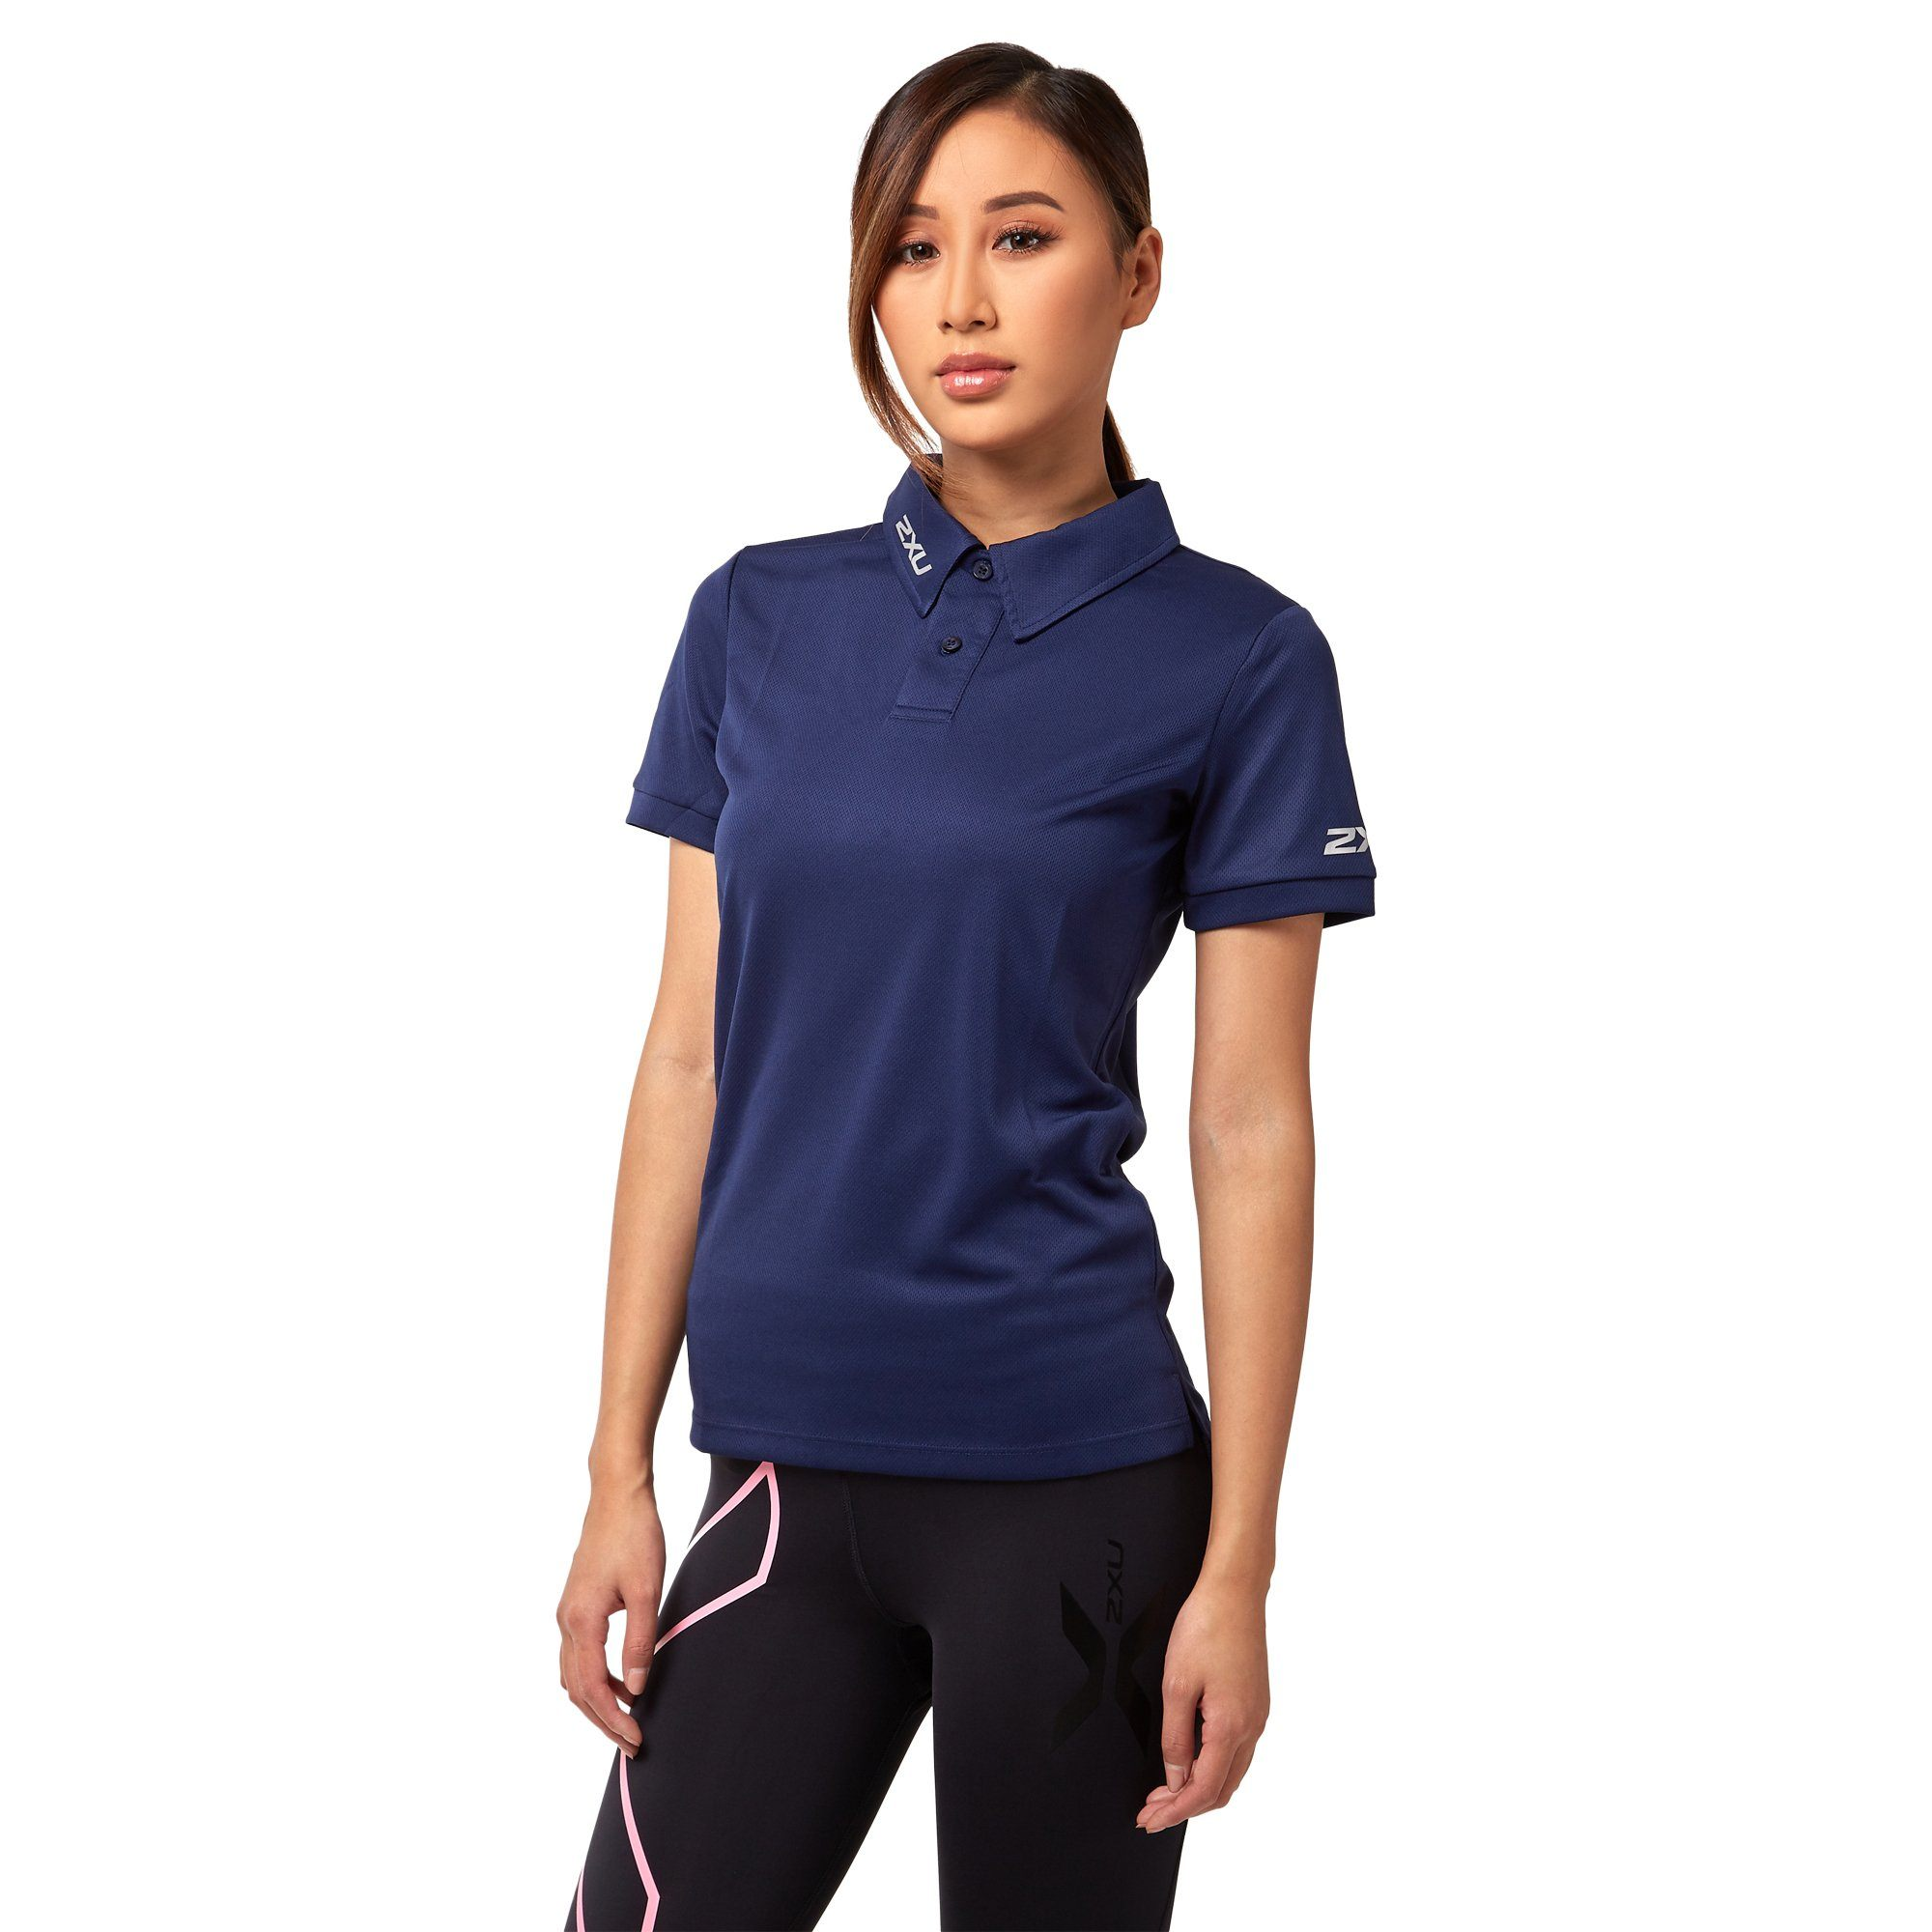 2XU Women's Performance Polo - Navy Apparel 2XU  (2019203252283)